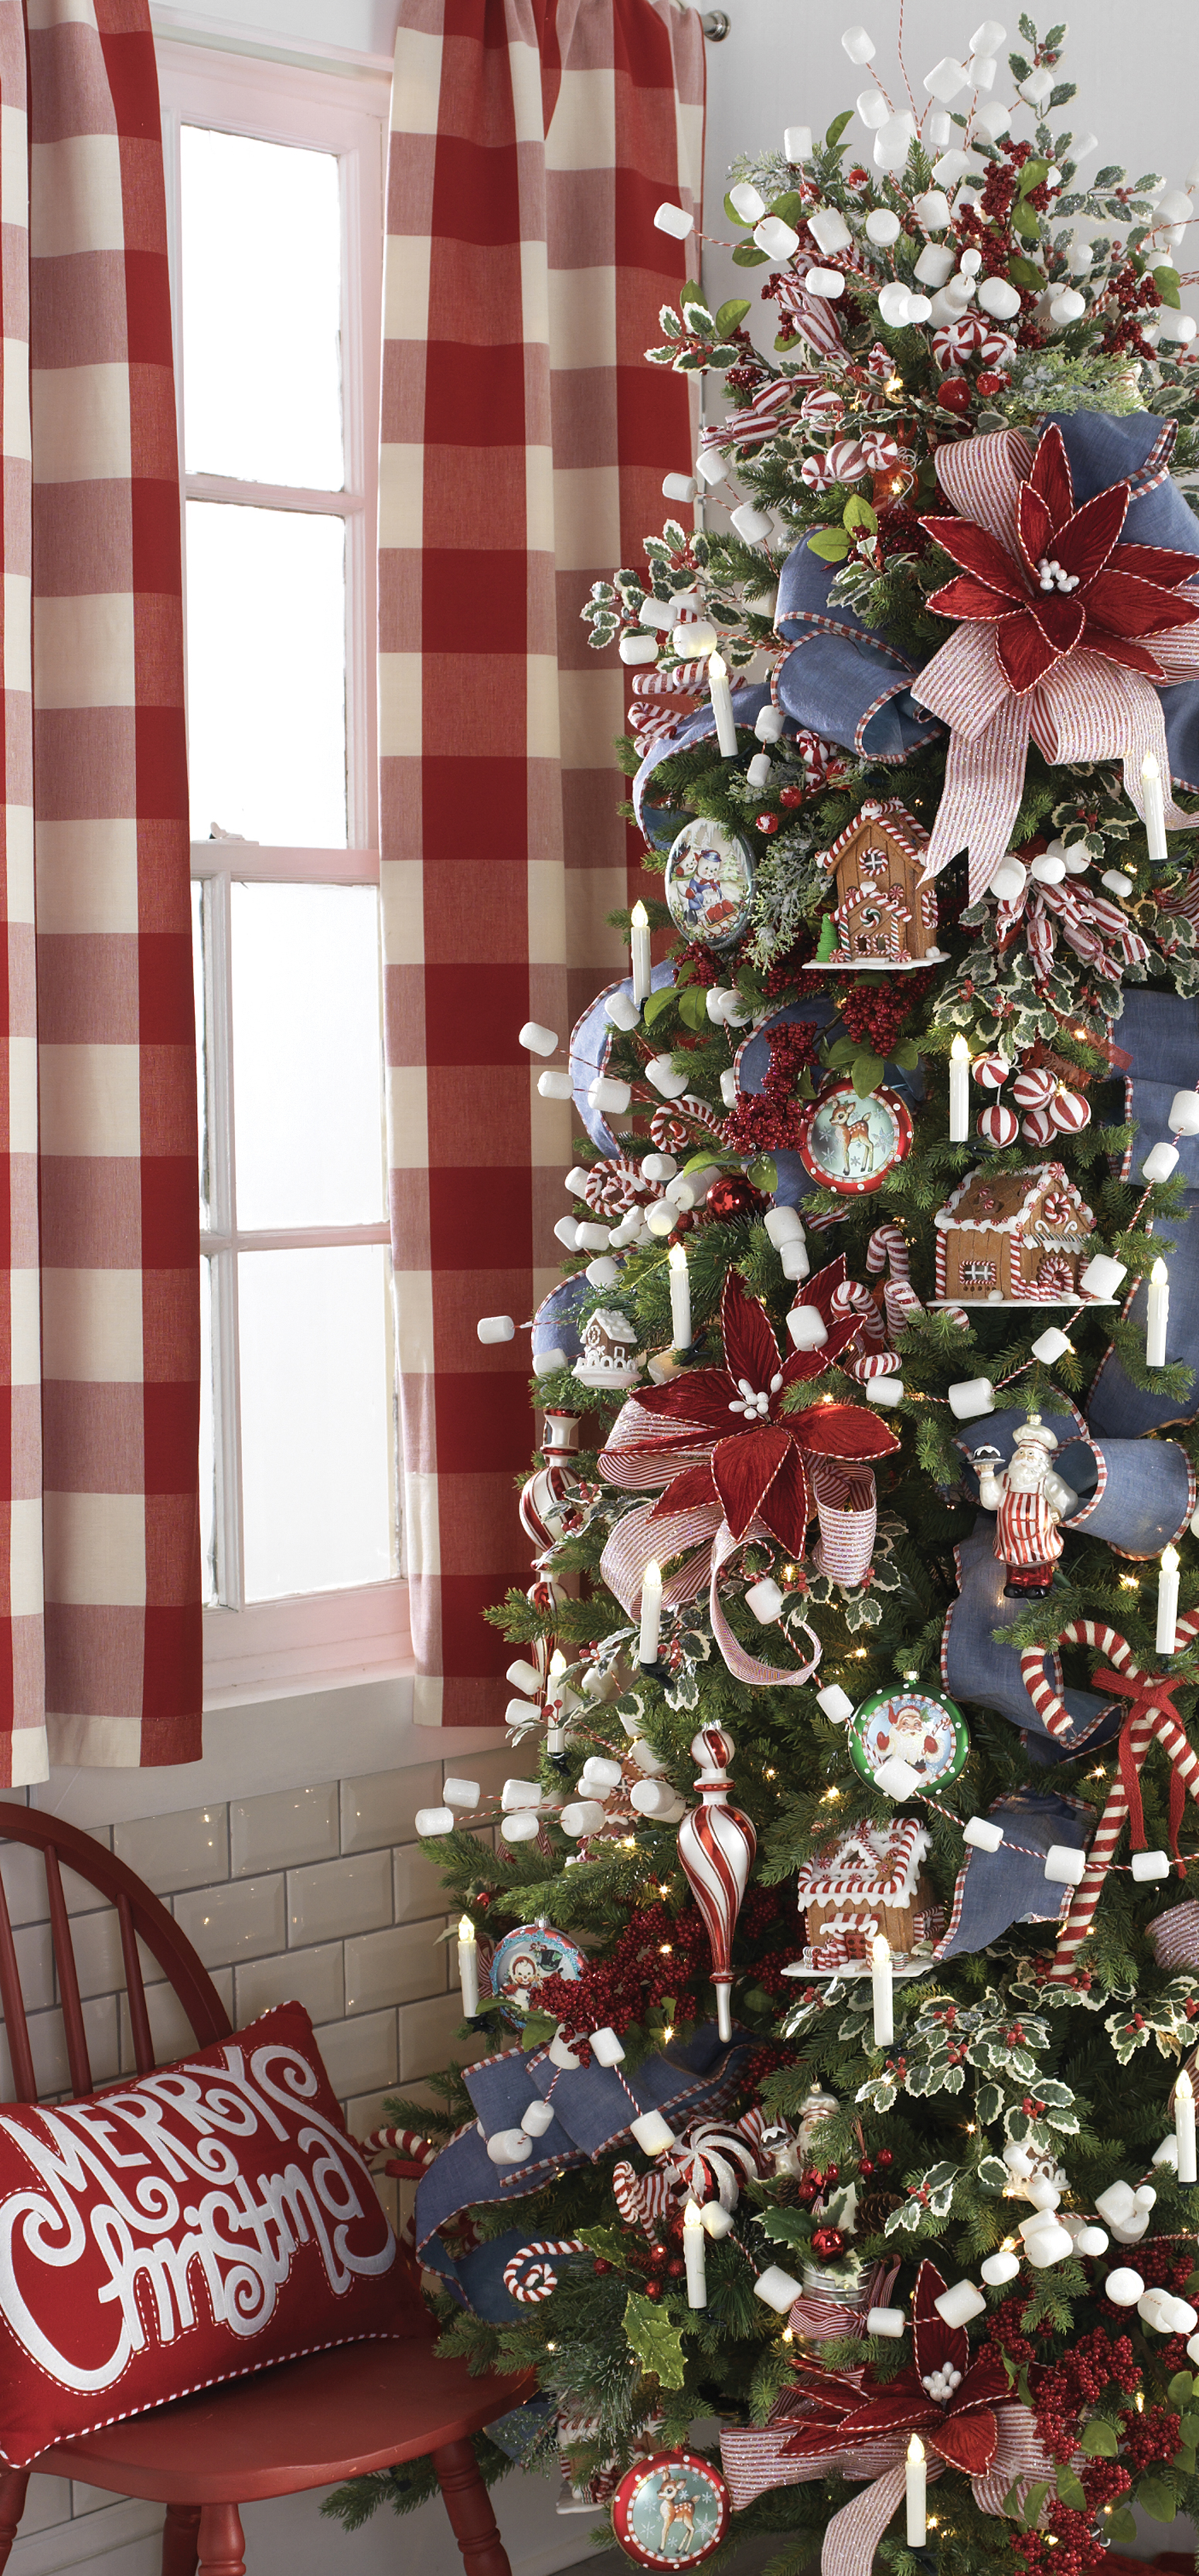 Christmas Tree Themes 2017! - The Jolly Christmas Shop